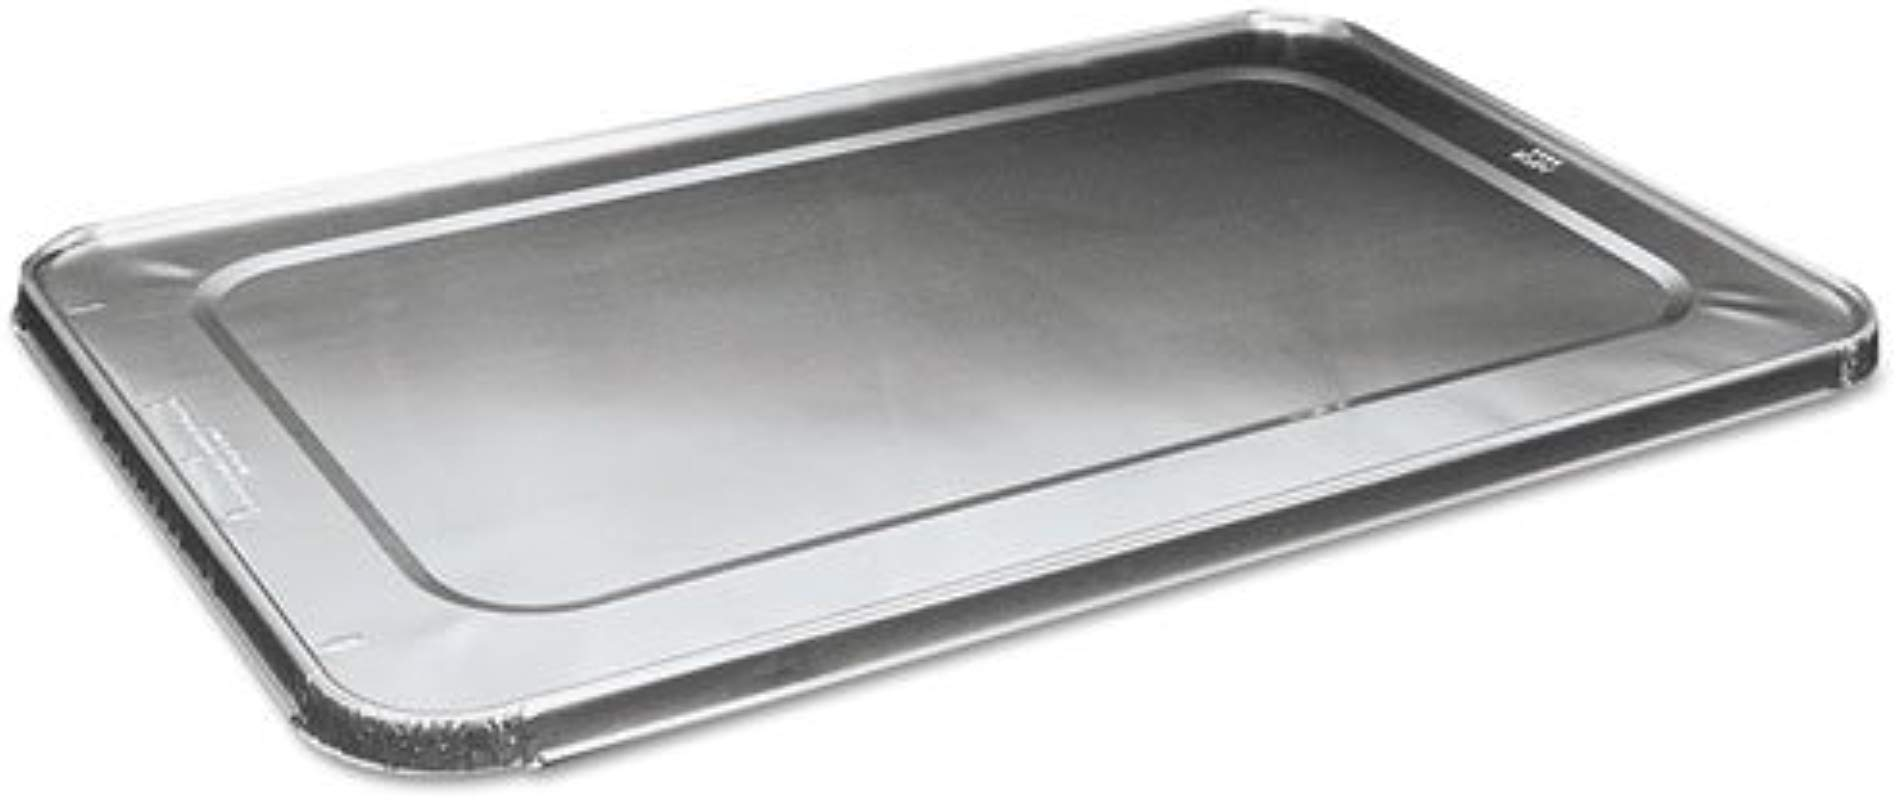 BWKLIDSTEAMFL Full Size Steam Table Pan Lid For Deep Pans